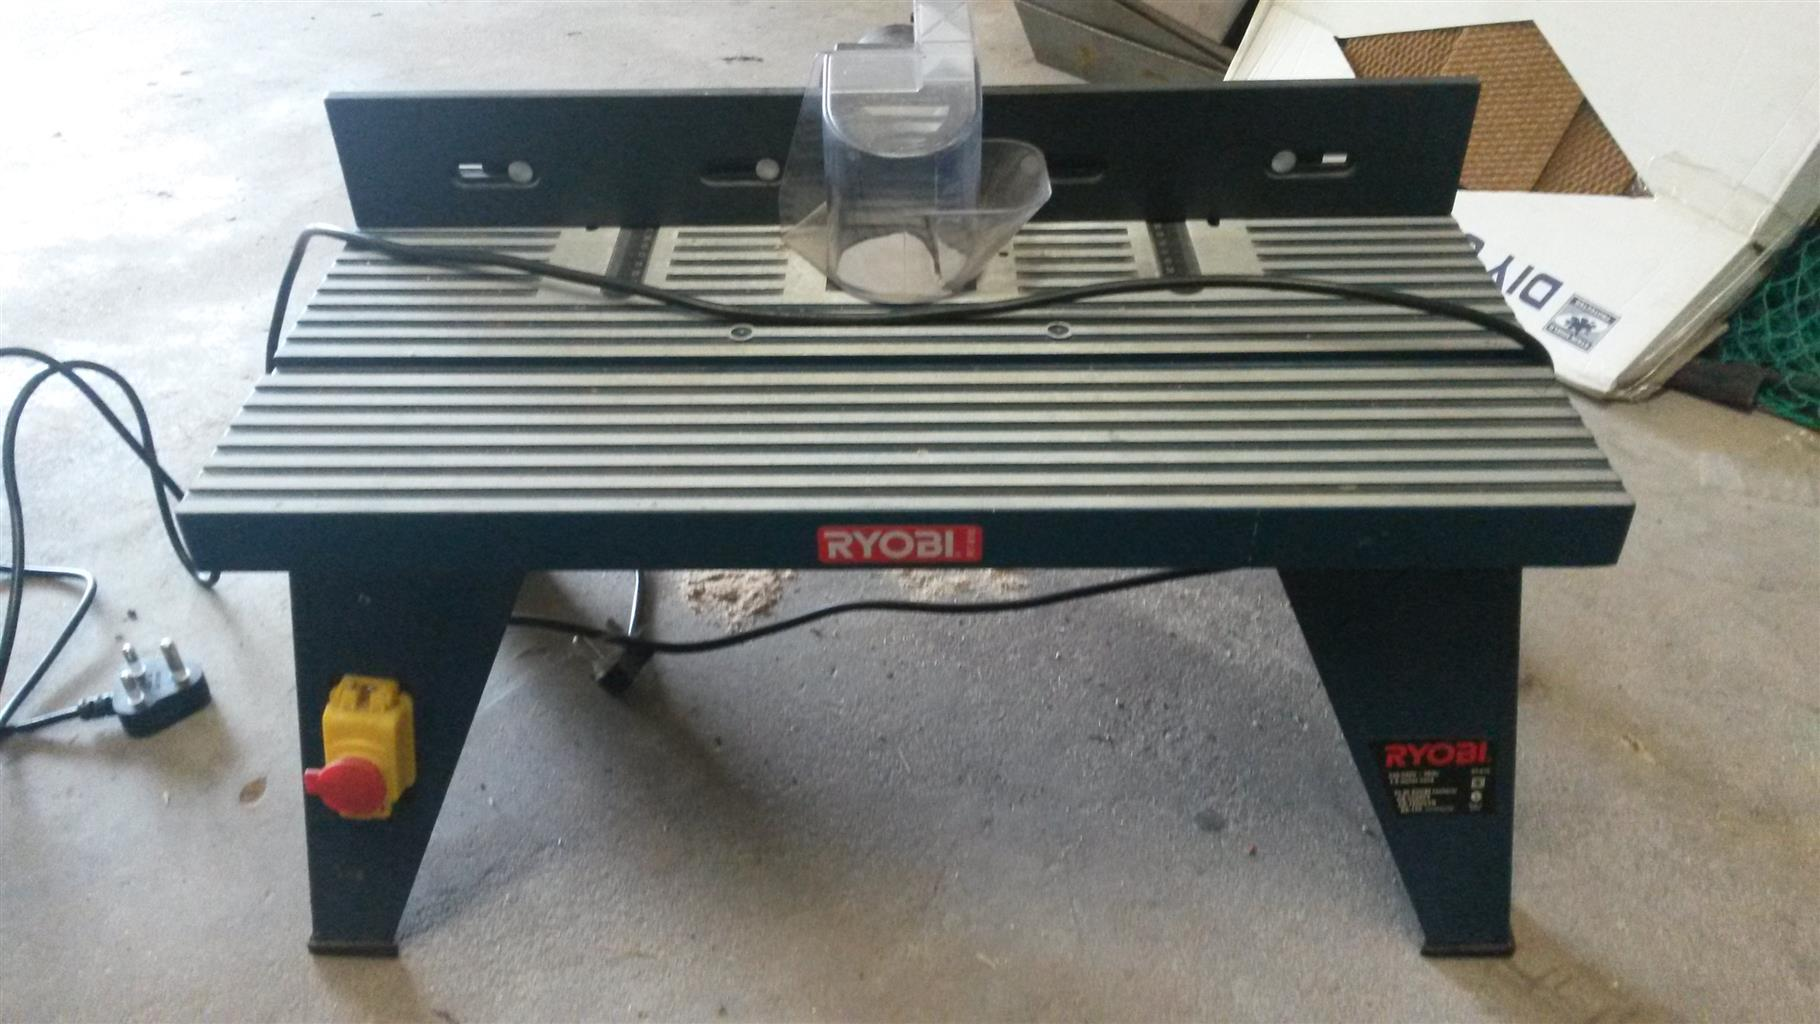 Ryobi router table insert plate image collections wiring table and ryobi router table insert plate images wiring table and diagram ryobi router table insert plate gallery keyboard keysfo Image collections